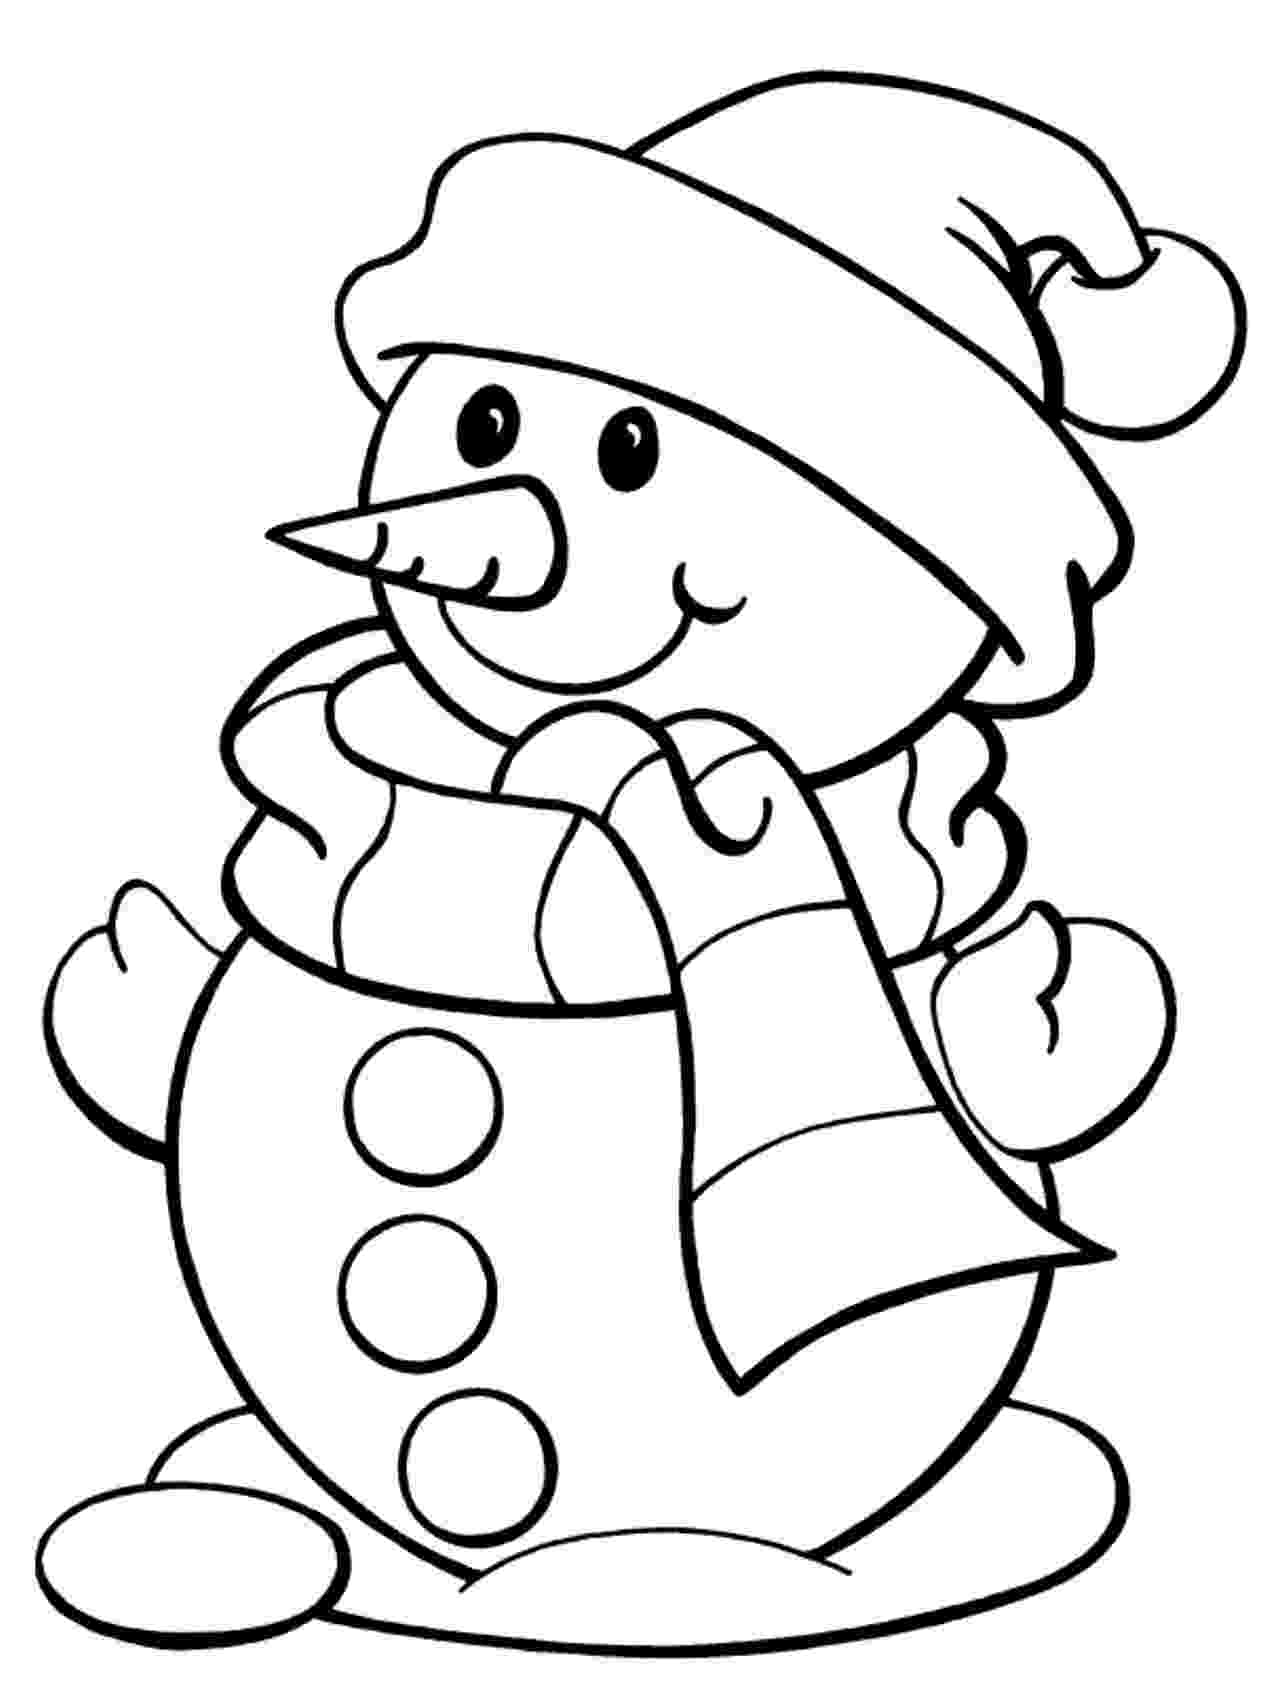 winter printable coloring pages winter season coloring pages crafts and worksheets for winter pages coloring printable